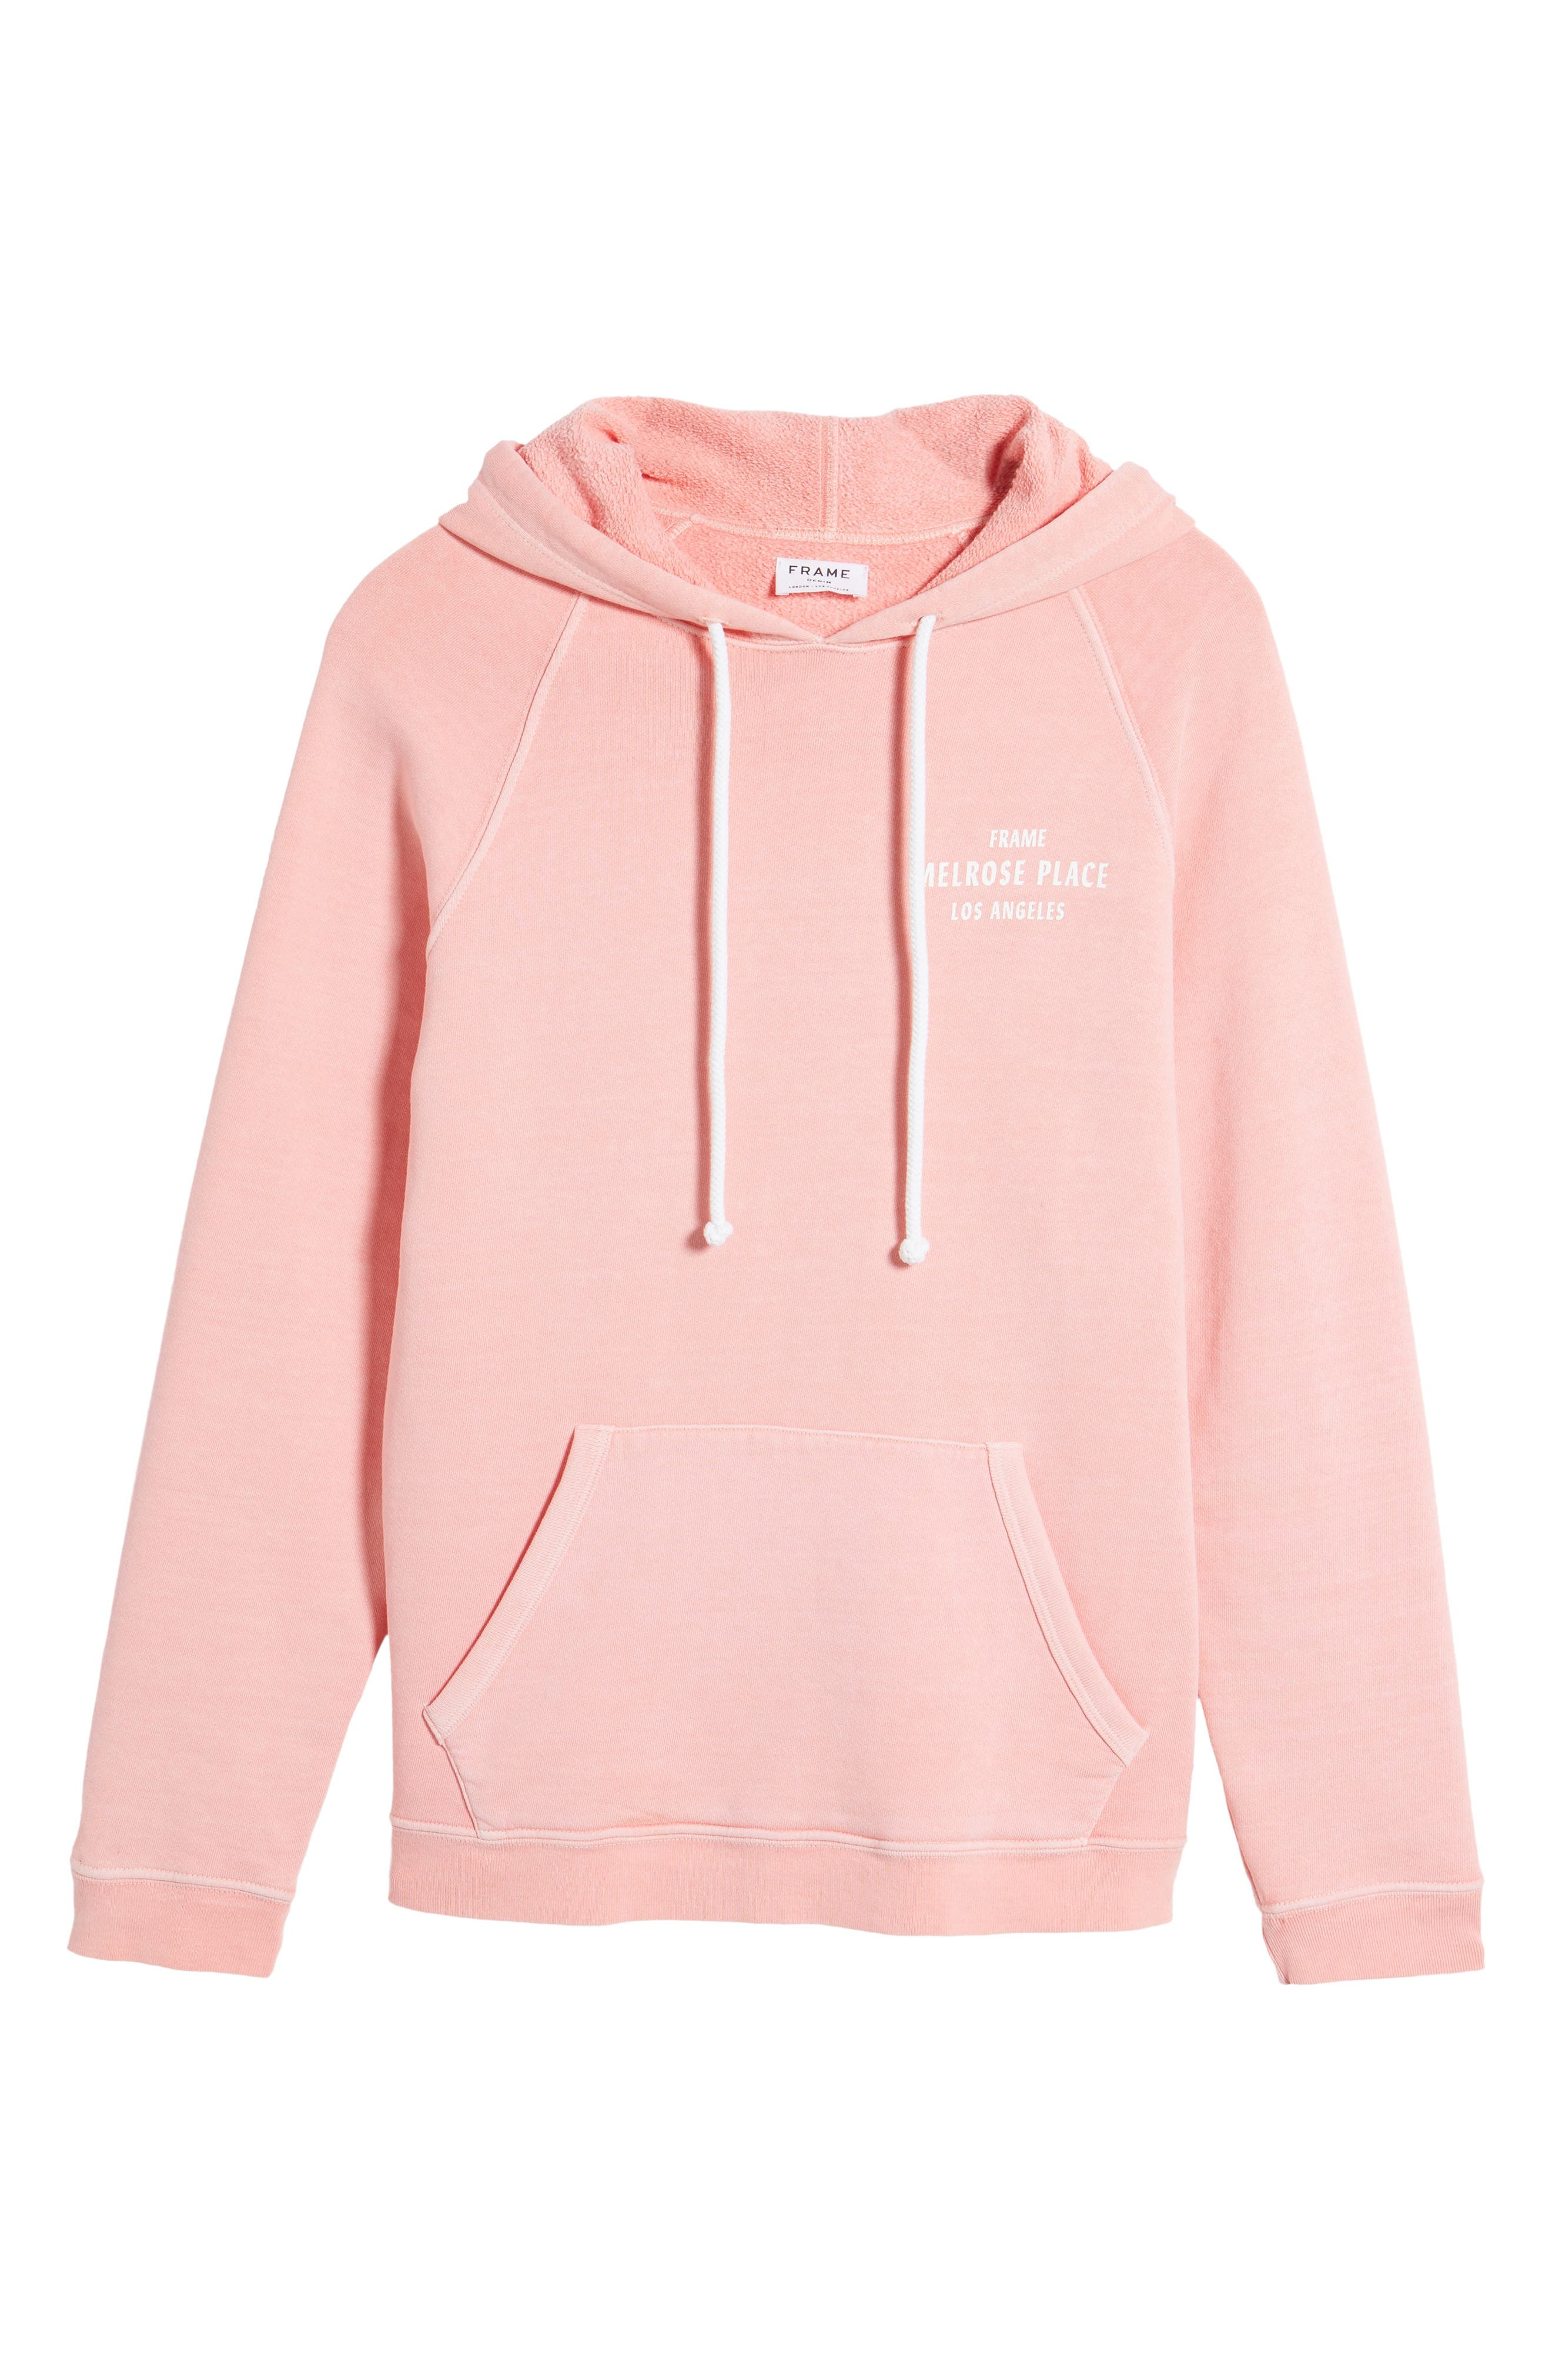 Vintage Pullover Hoodie,                             Alternate thumbnail 4, color,                             Faded Light Pink